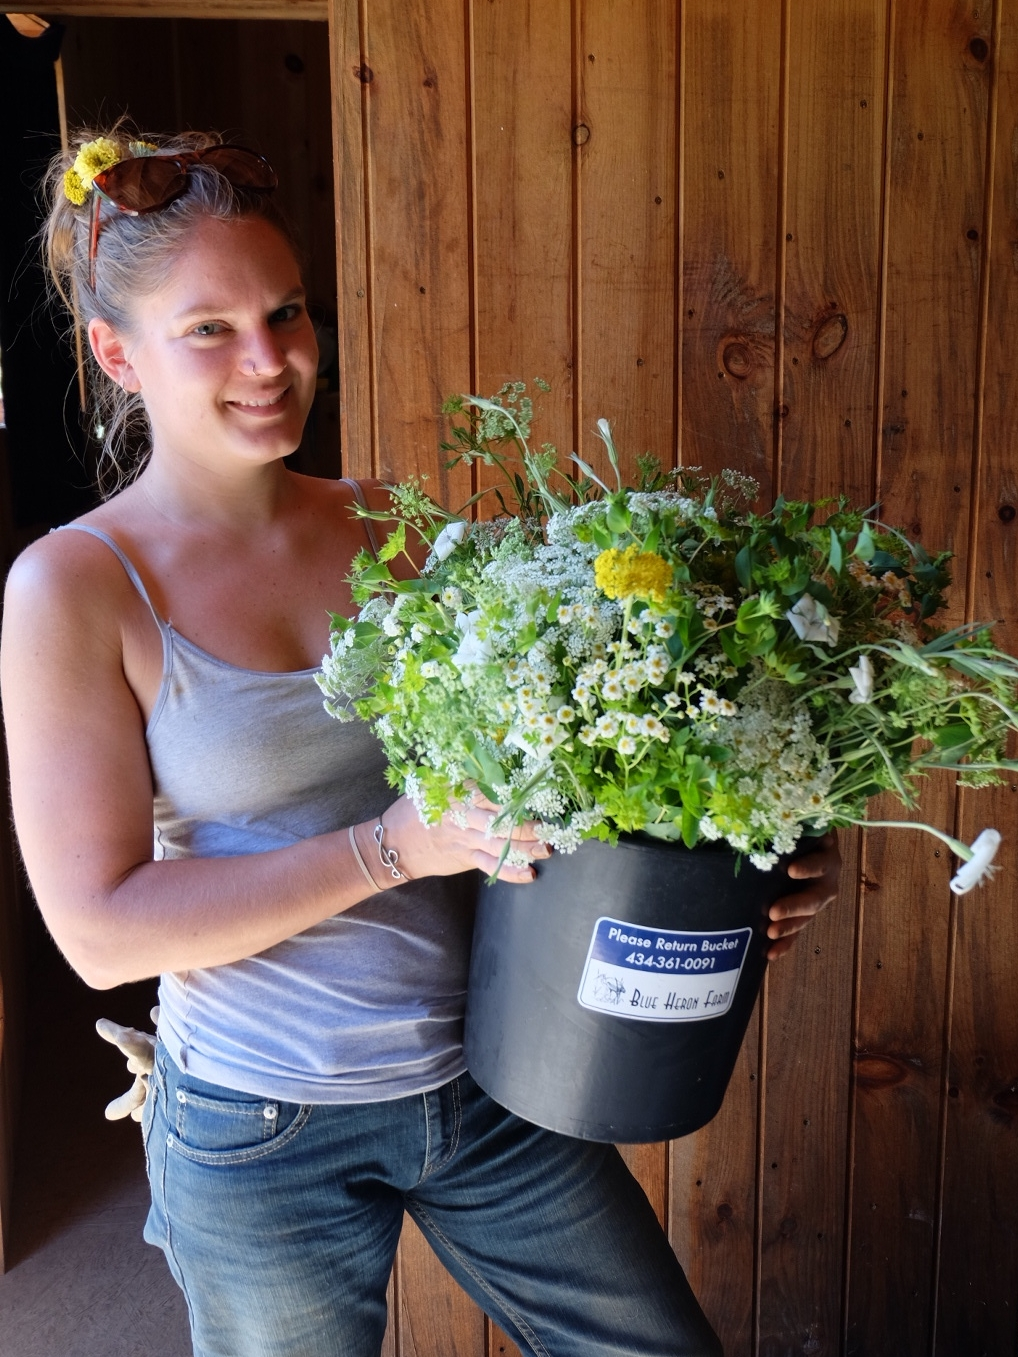 Marie with flower bucket